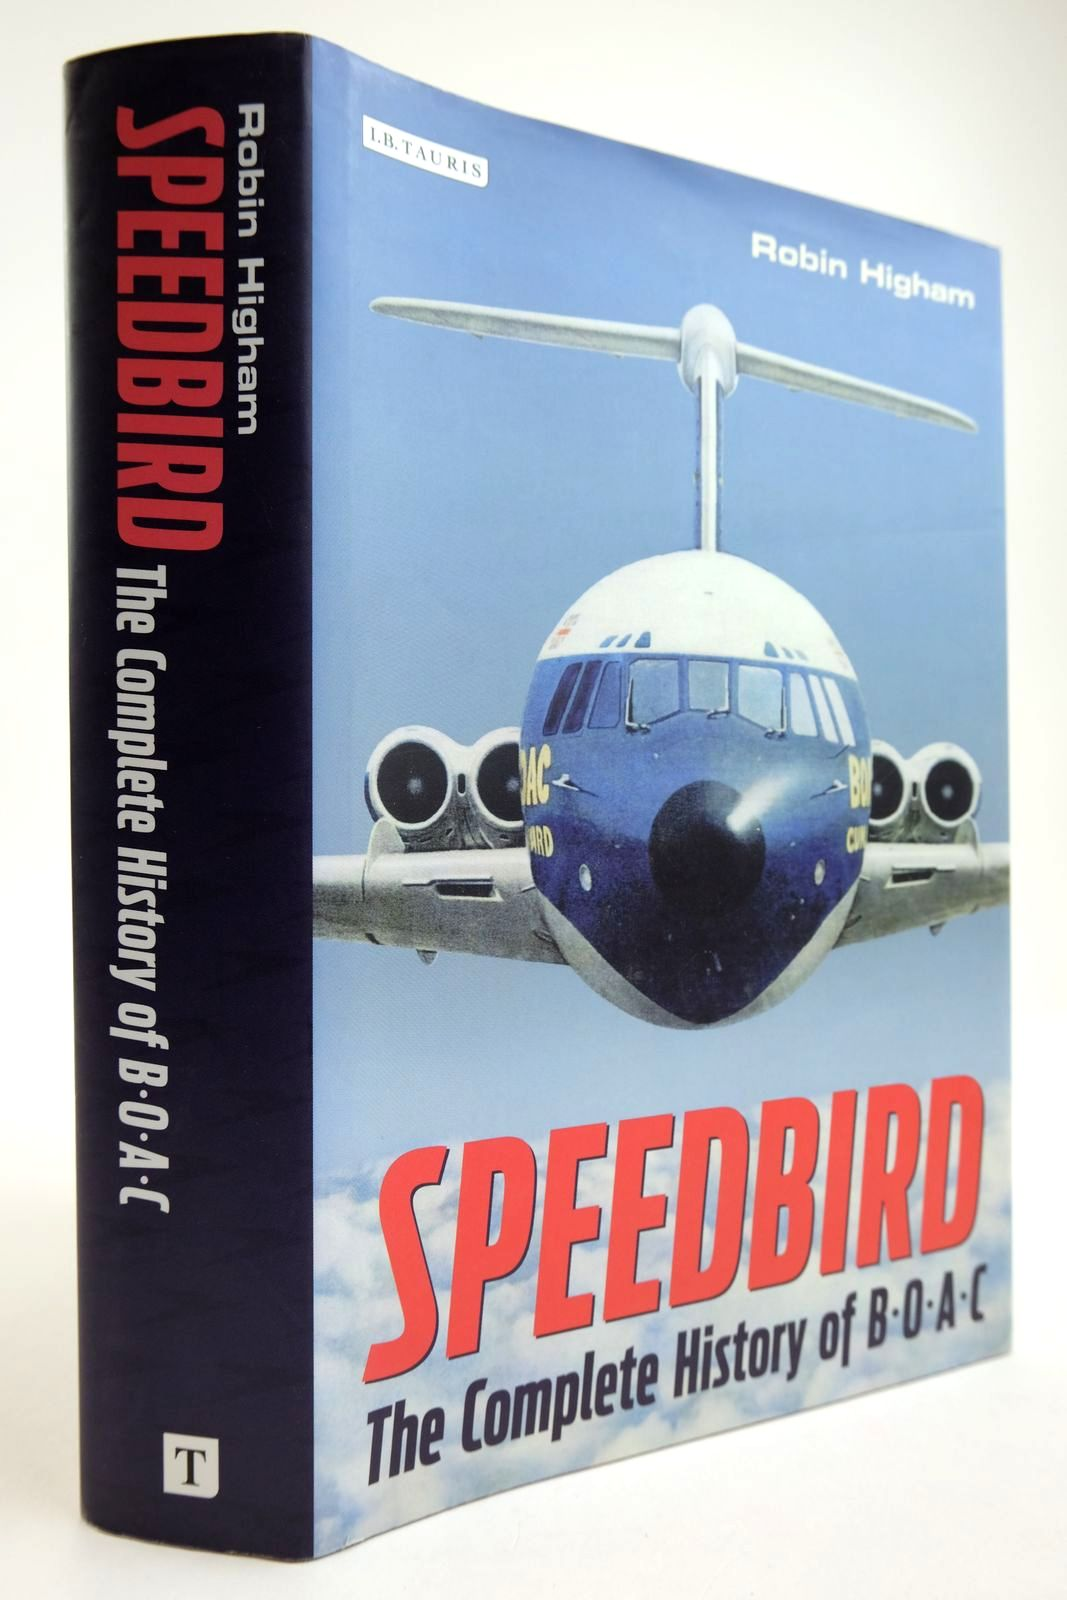 Photo of SPEEDBIRD: THE COMPLETE HISTORY OF B.O.A.C. written by Higham, Robin published by I.B. Tauris & Co. Ltd. (STOCK CODE: 2134094)  for sale by Stella & Rose's Books